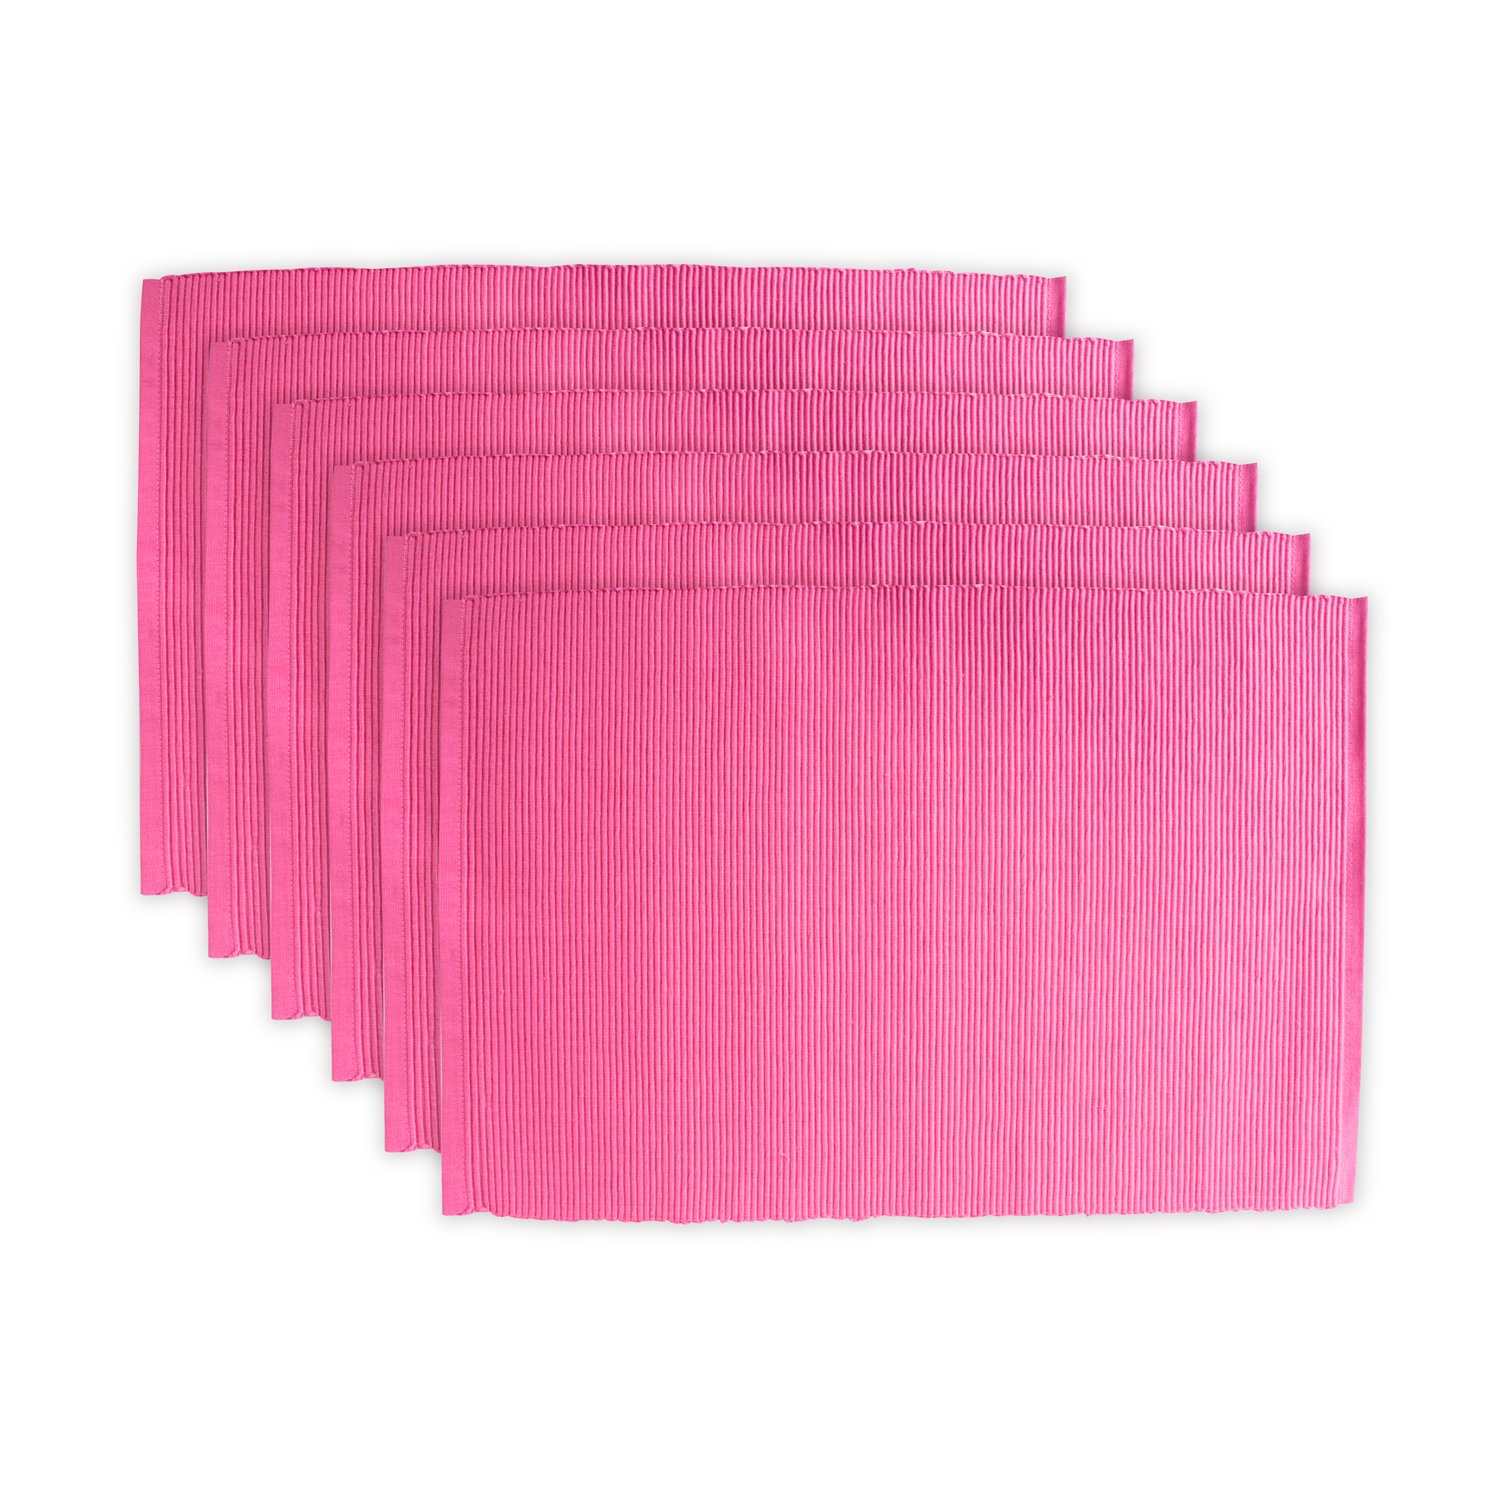 DII Cotton Ribbed Table Placemat for Valentine's Day, Mother's Day and Everyday Use - 13x 19, Flamingo Pink, Set of 6 by DII